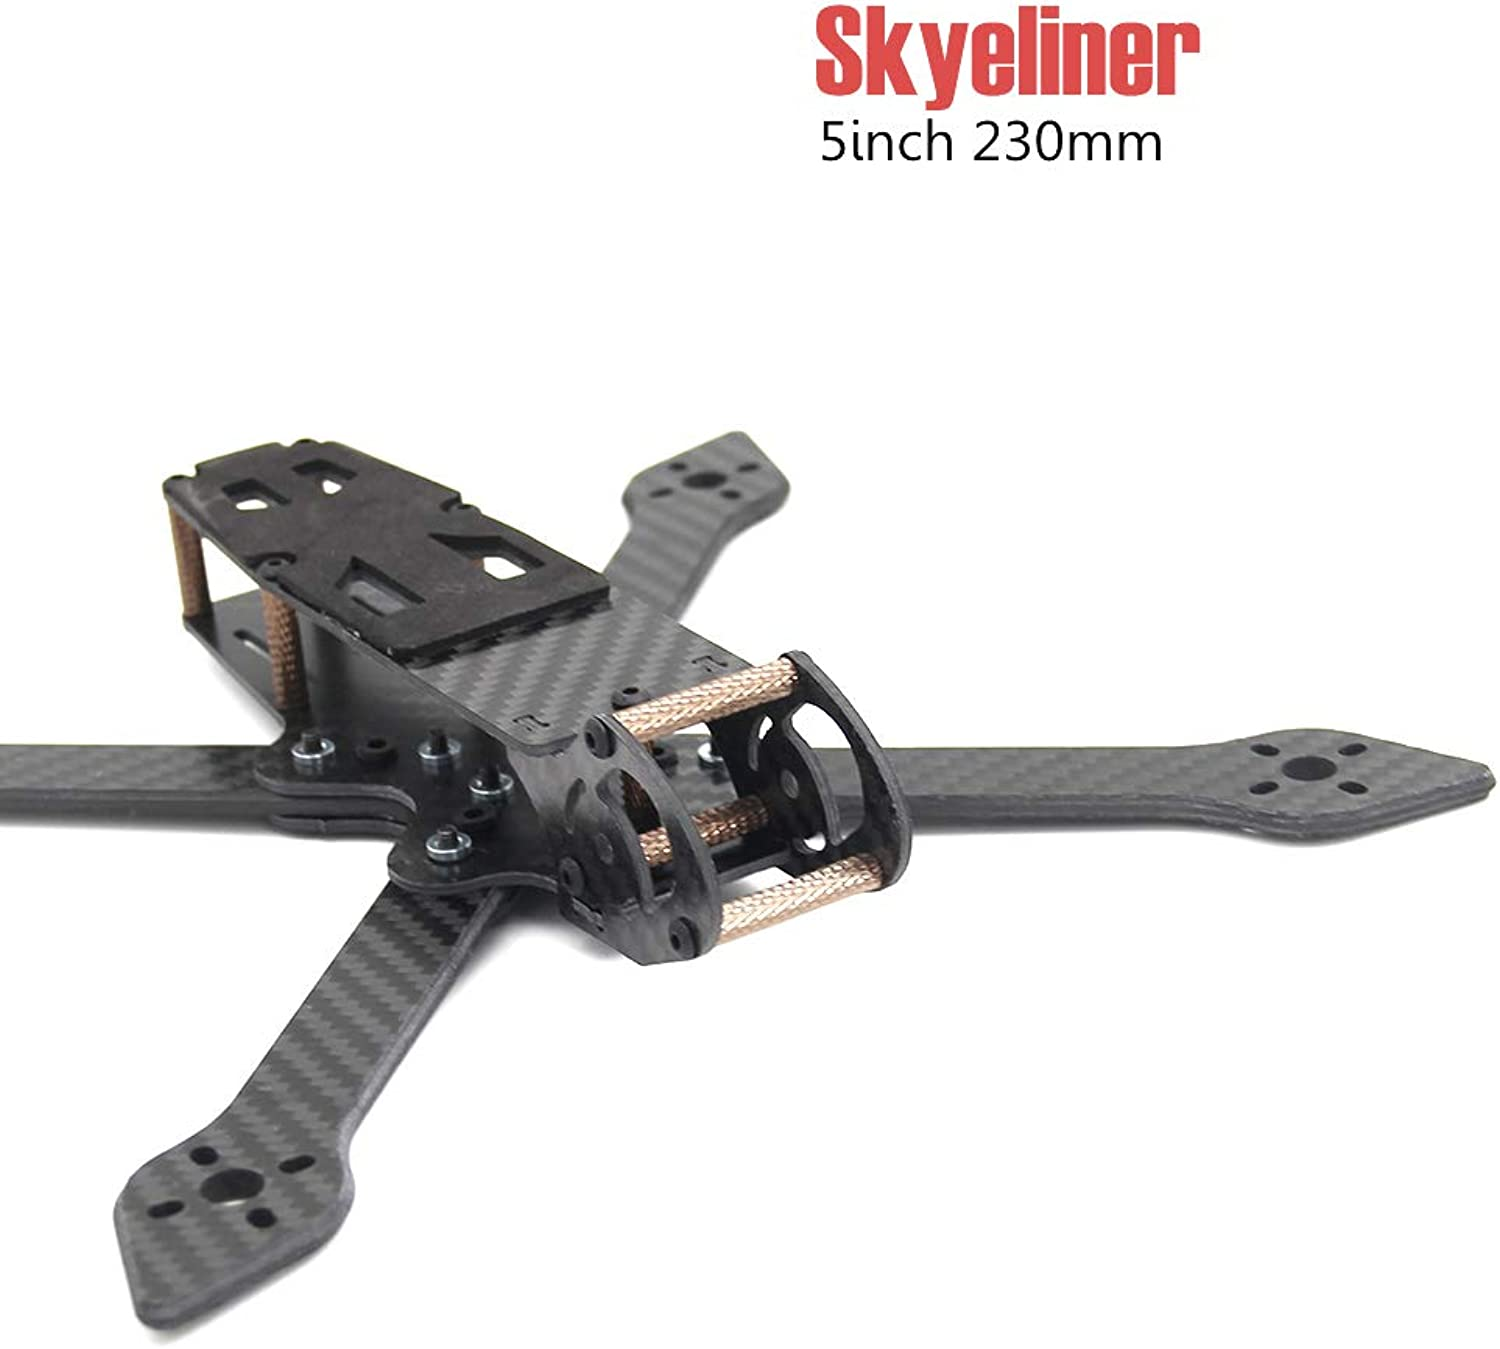 Skyeliner 5inch 230mm 230 5' True X with milling arms Quadcopter Drone Frame kit